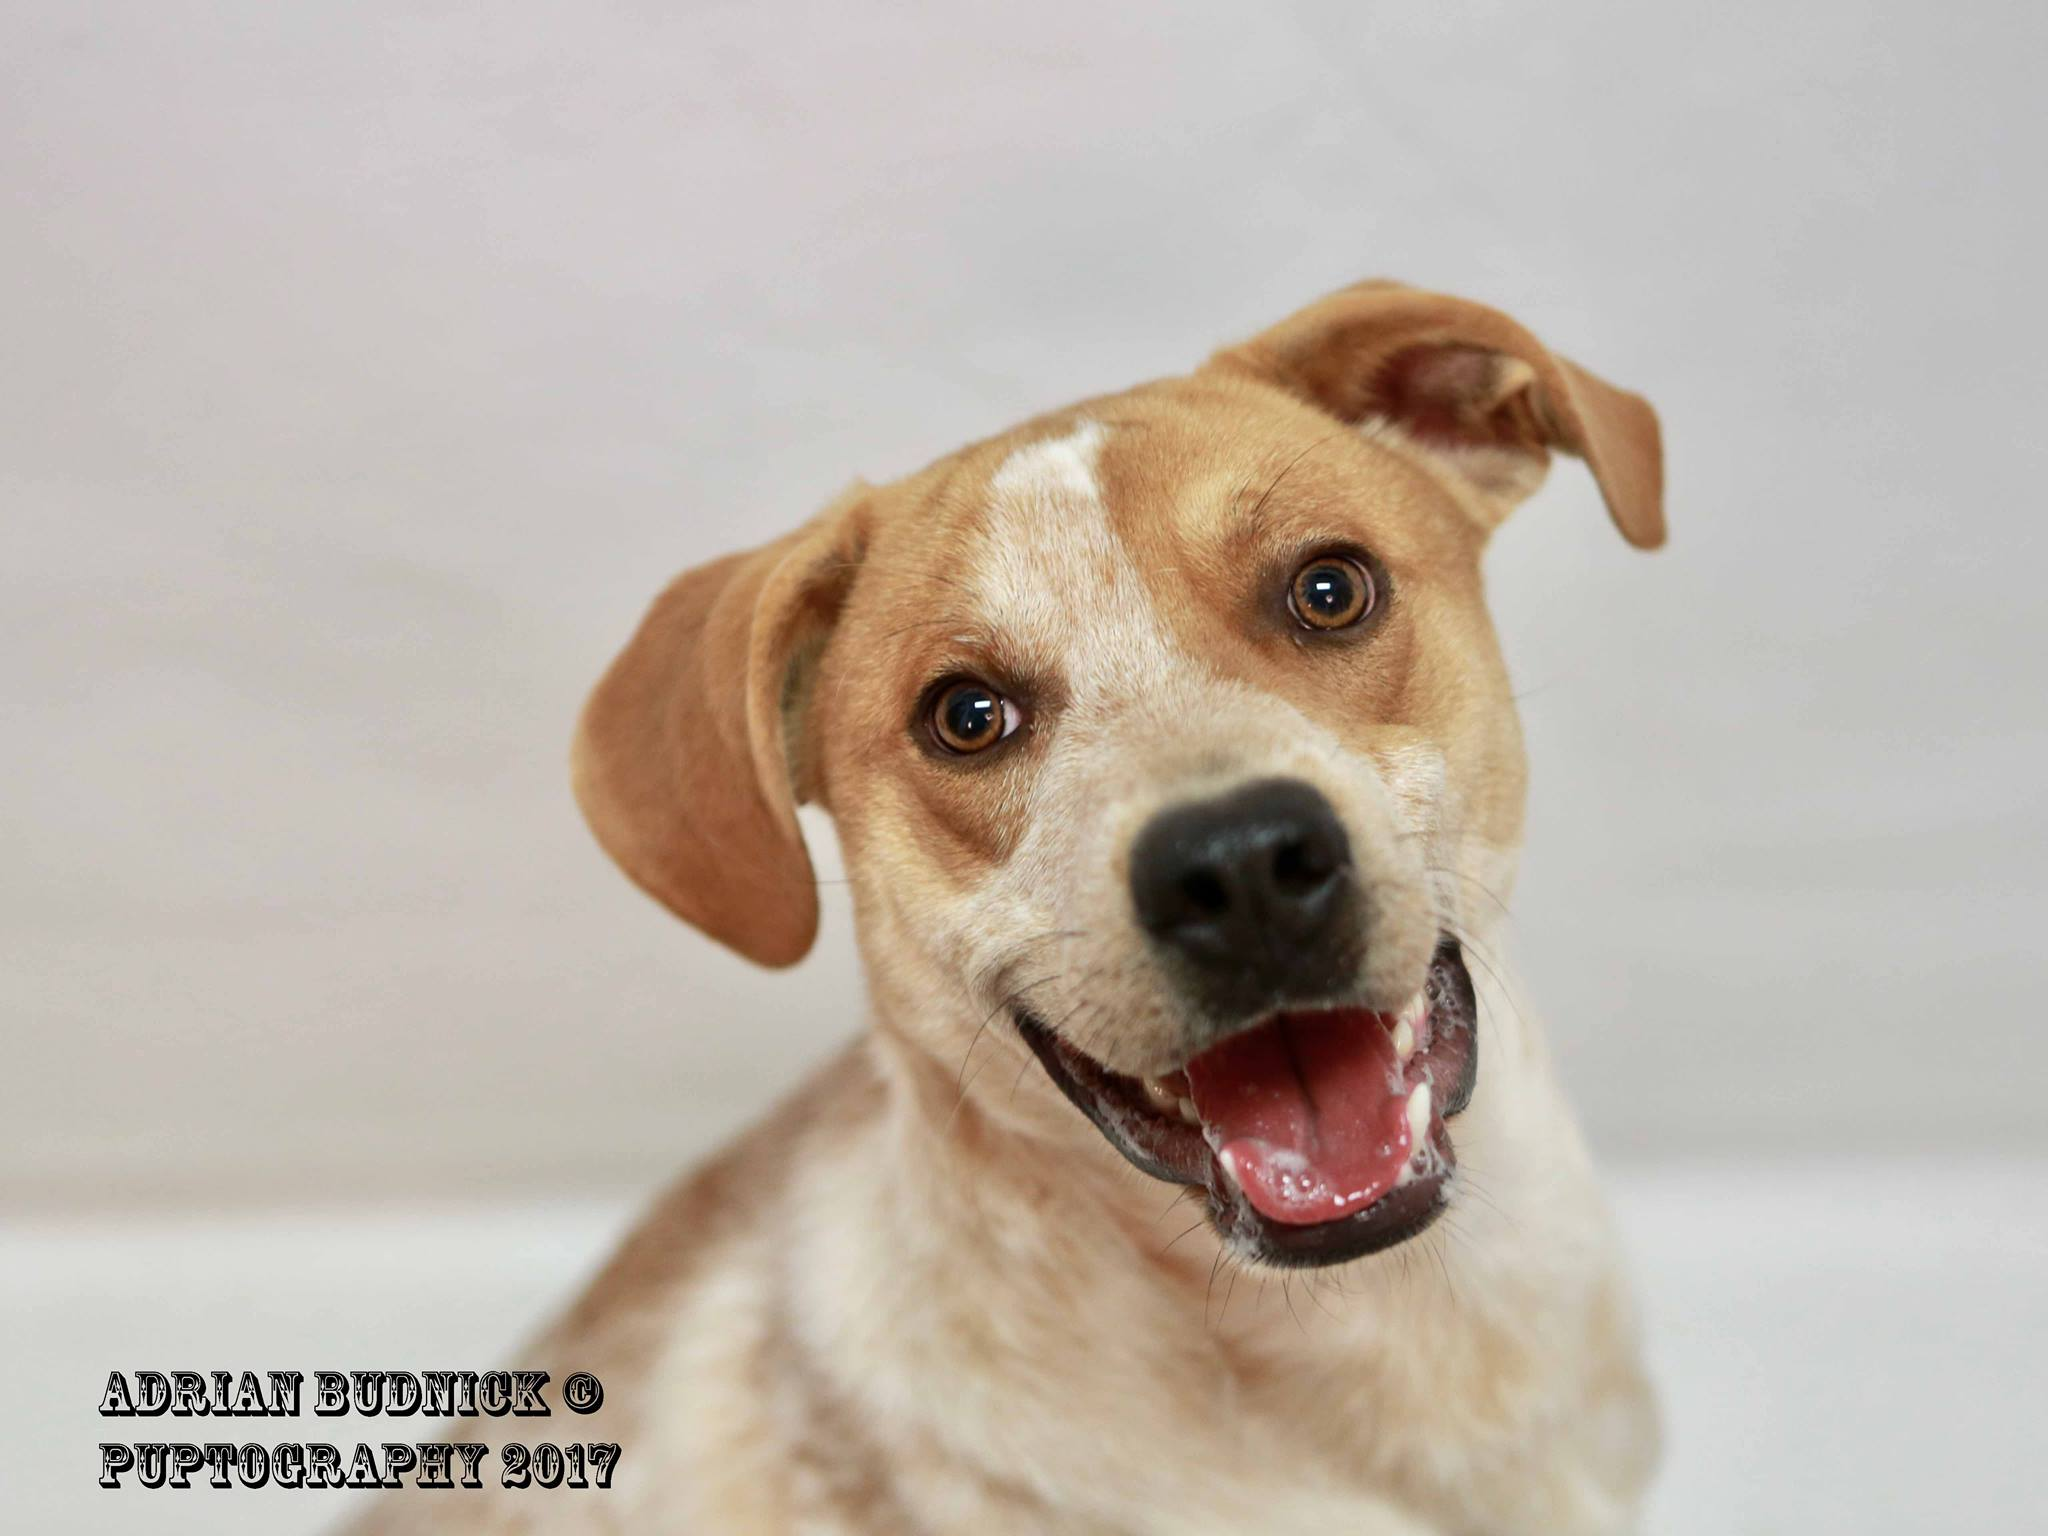 Woody A153375 is a 3 year old lab. He is available at Metro Nashville Animal Care and Control